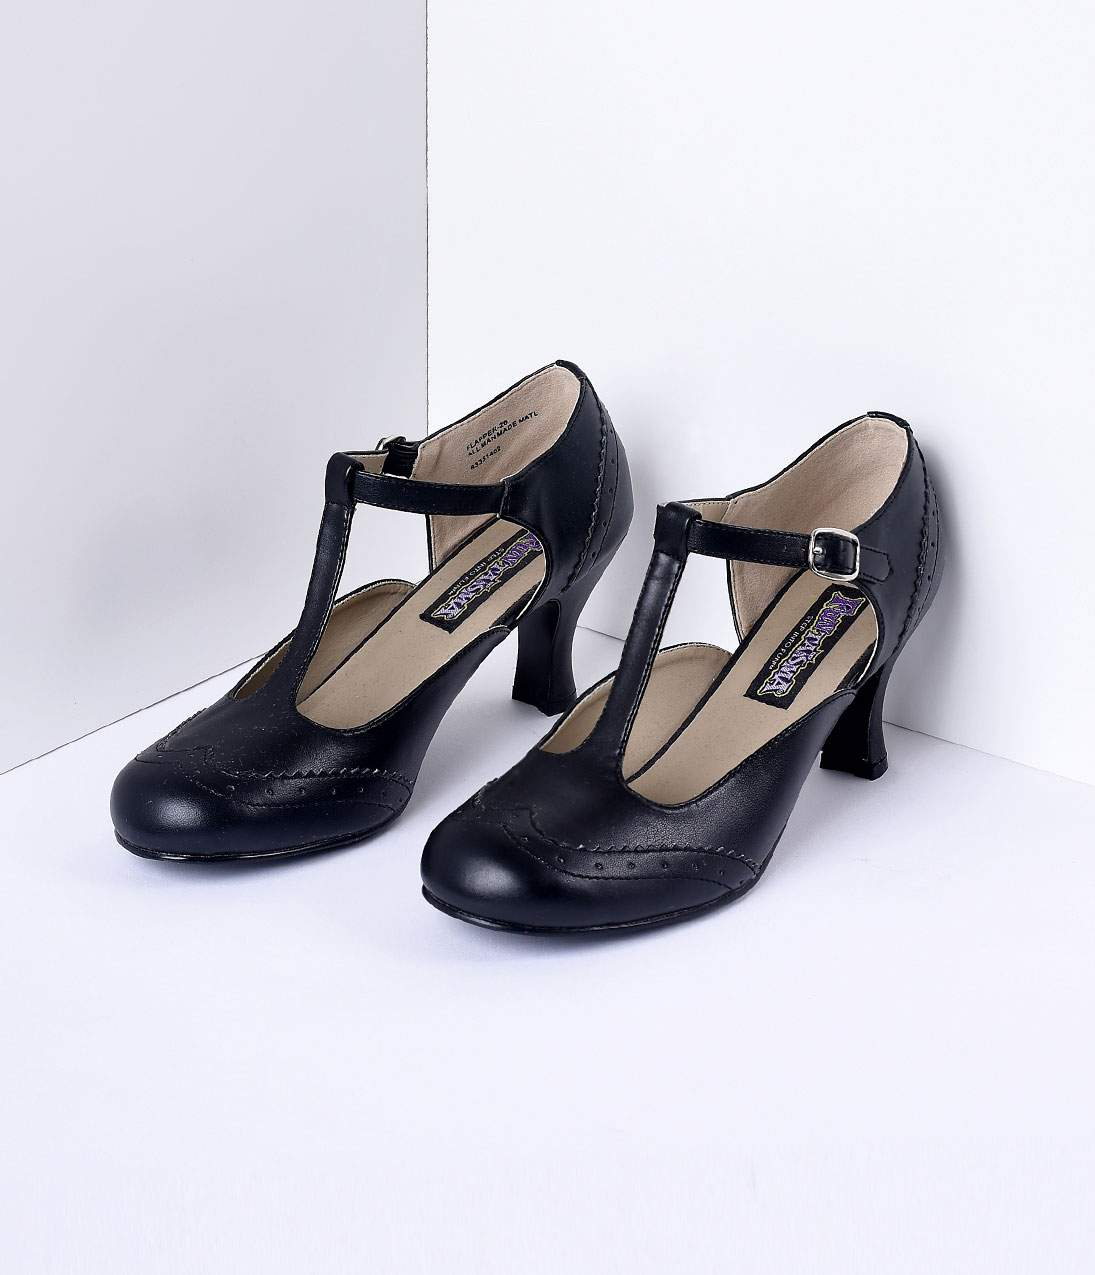 1920s Shoes UK – T-Bar, Oxfords, Flats Black T-Strap Mary Jane Kitten Heels $58.00 AT vintagedancer.com